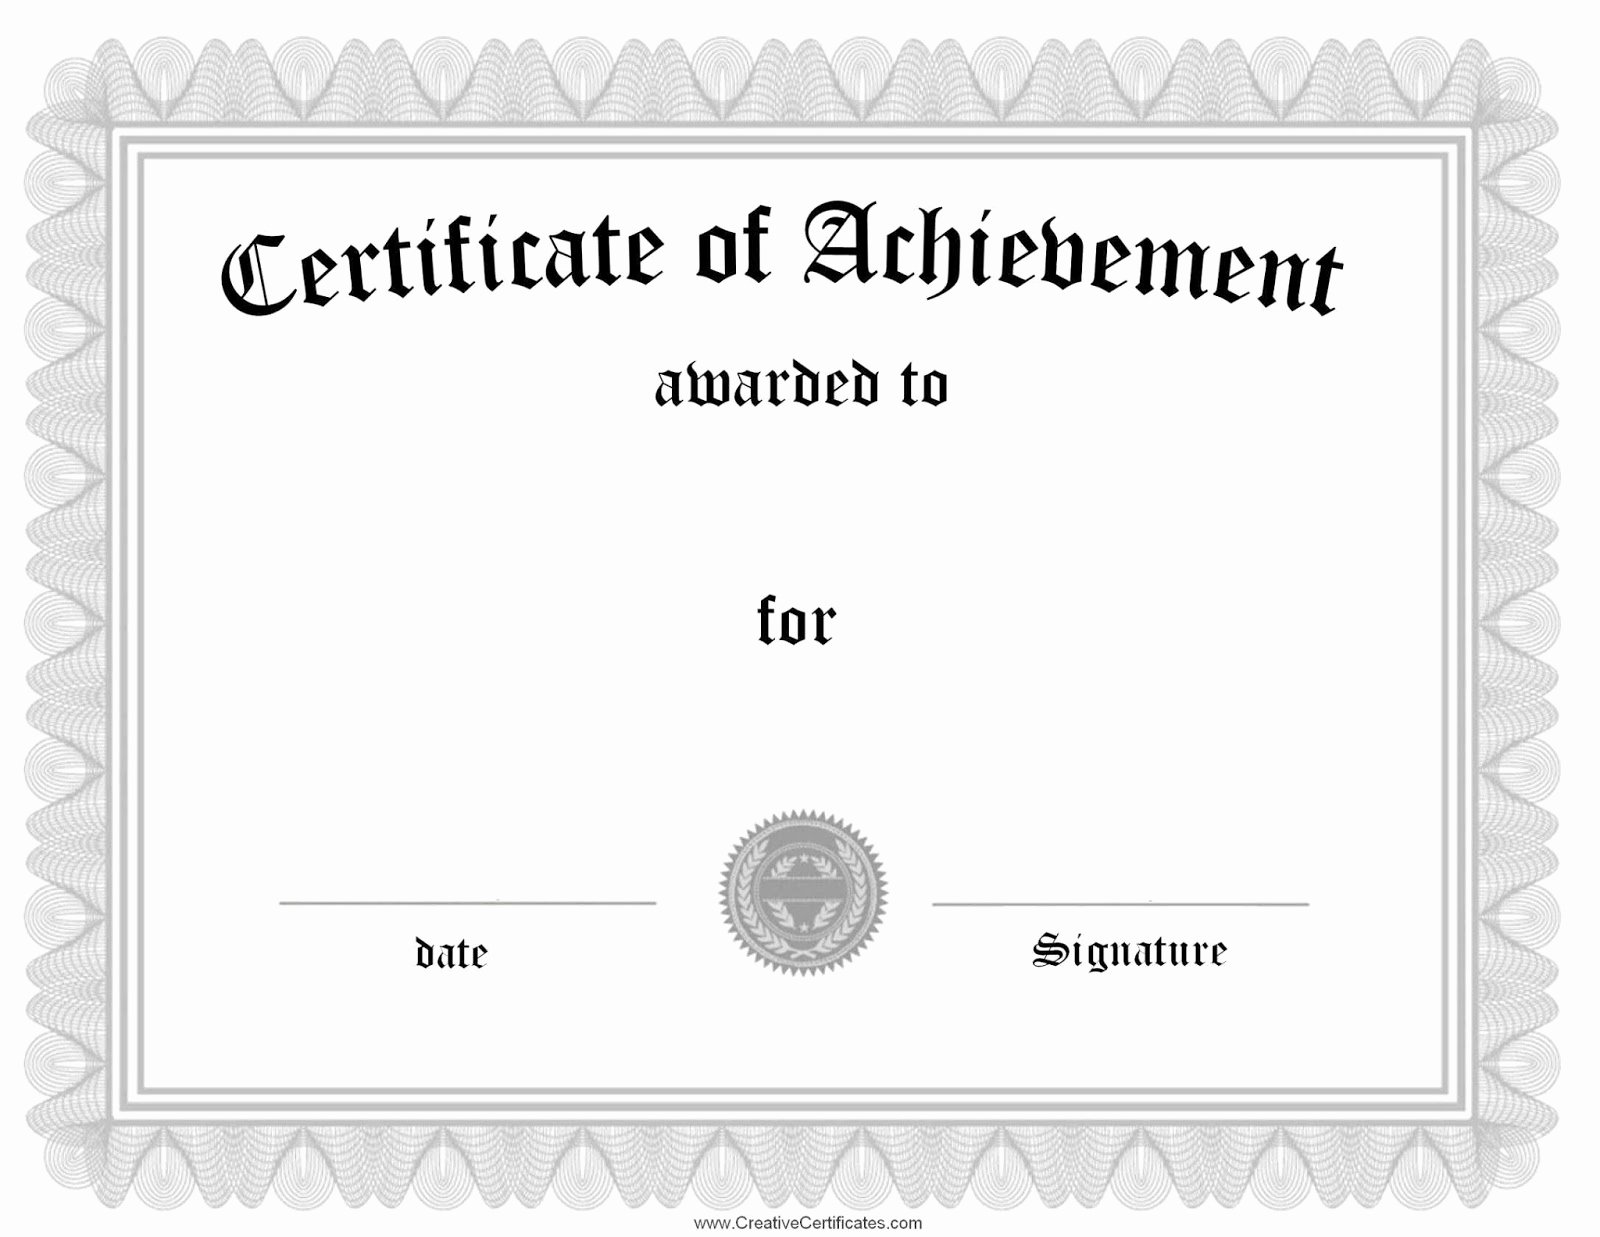 Army Certificate Of Achievement Template Inspirational Certificate Templates Sample Blank Certificates